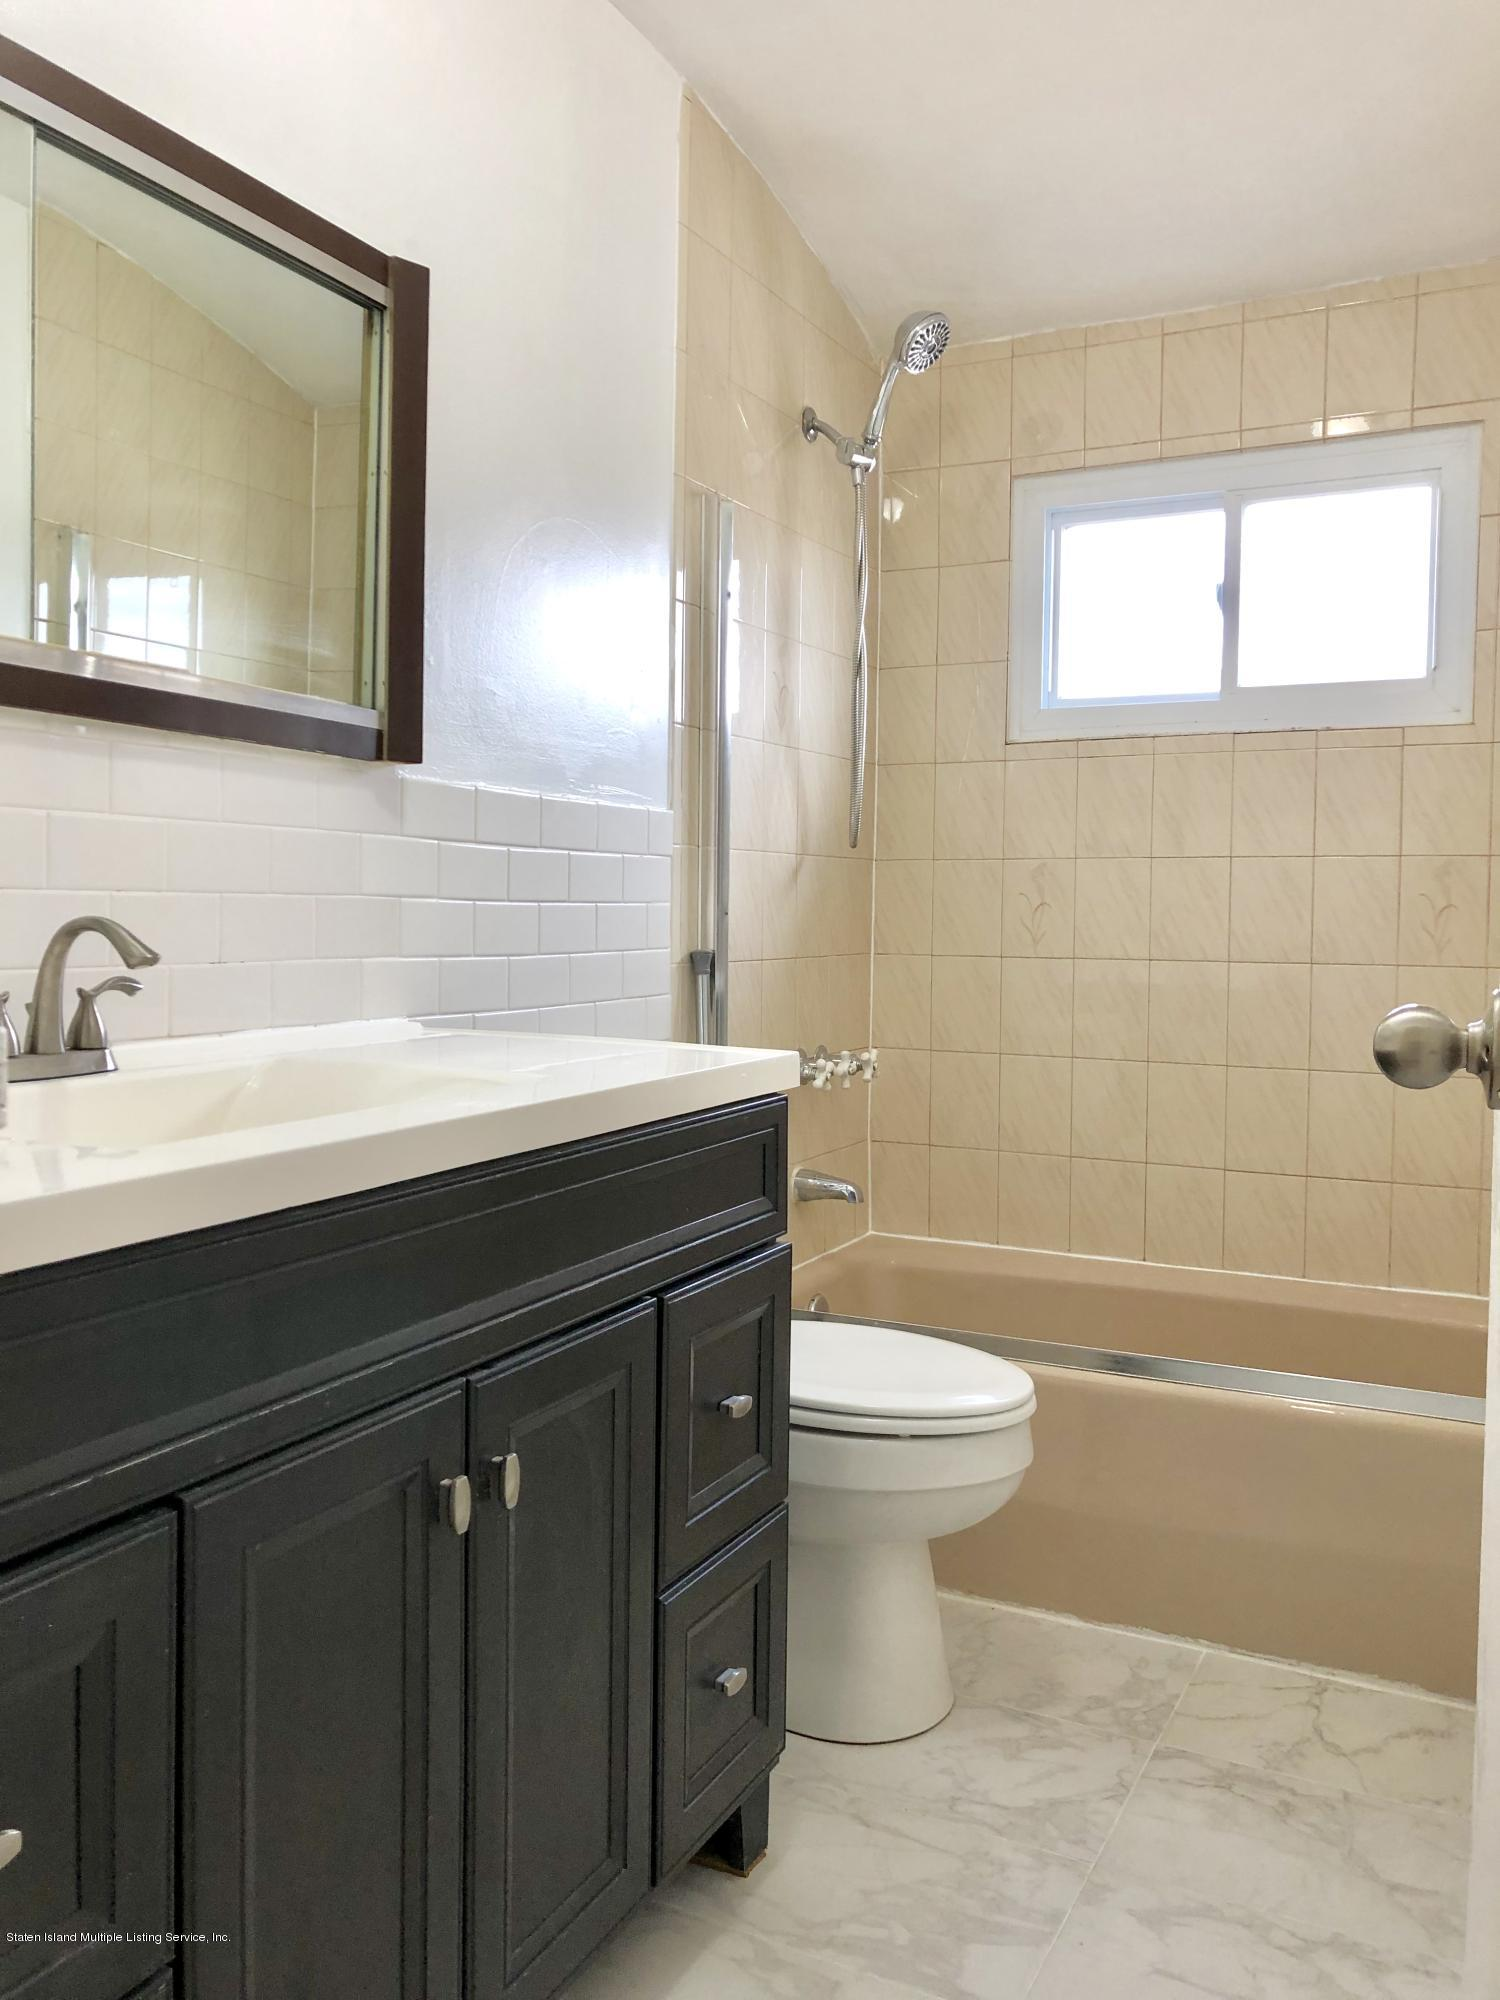 Single Family - Semi-Attached 205 Mcveigh Avenue  Staten Island, NY 10314, MLS-1123847-15